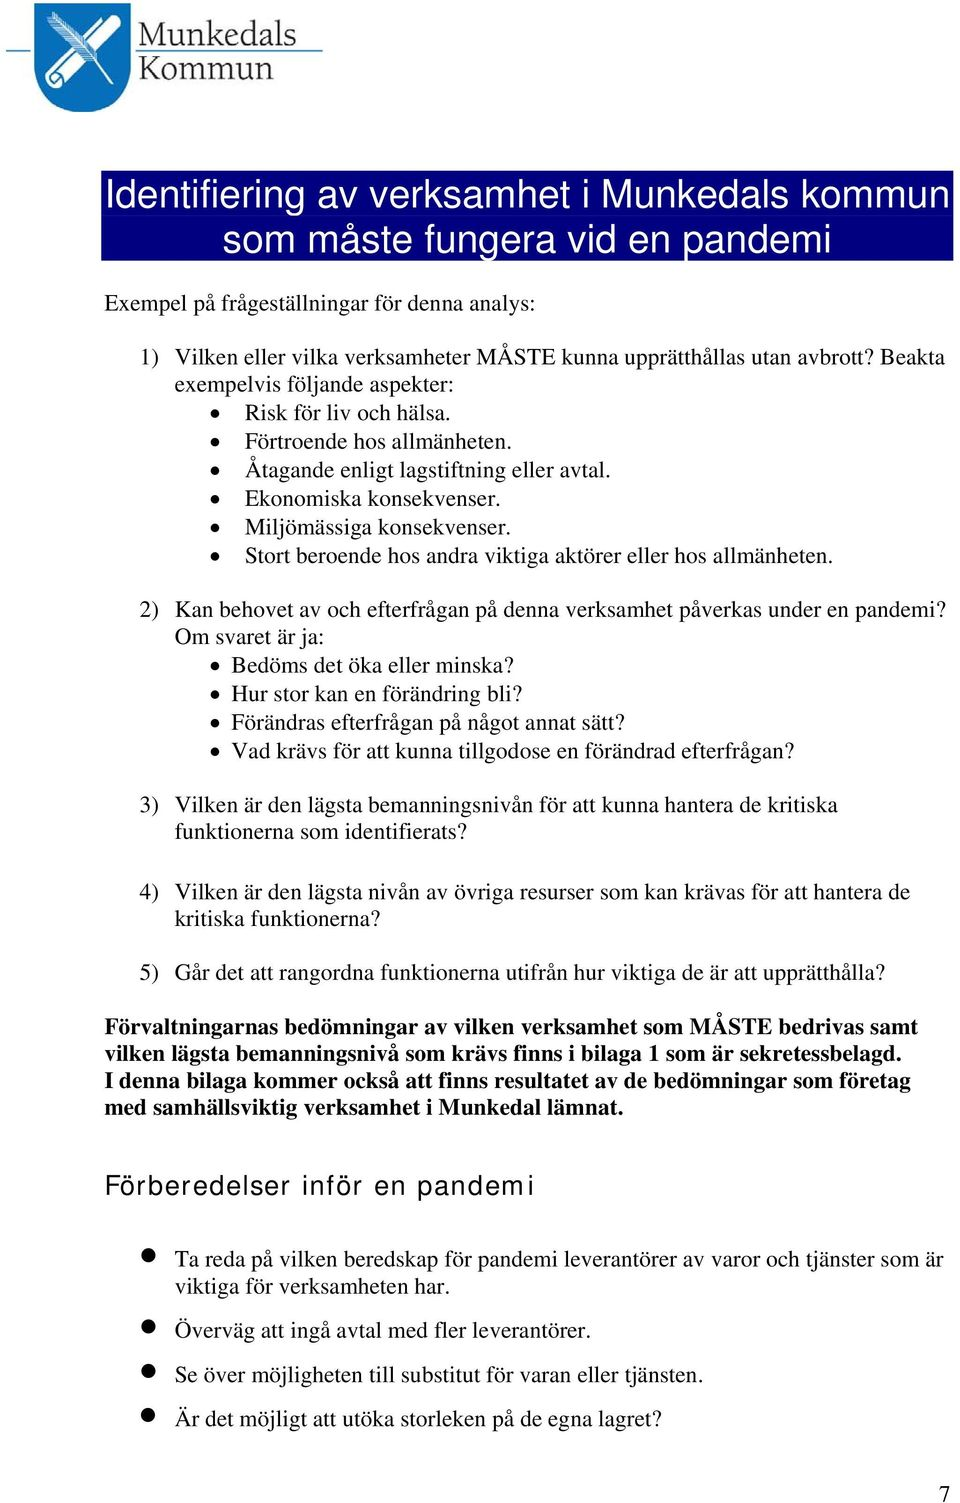 Stor risk for fagelinfluensa pandemi